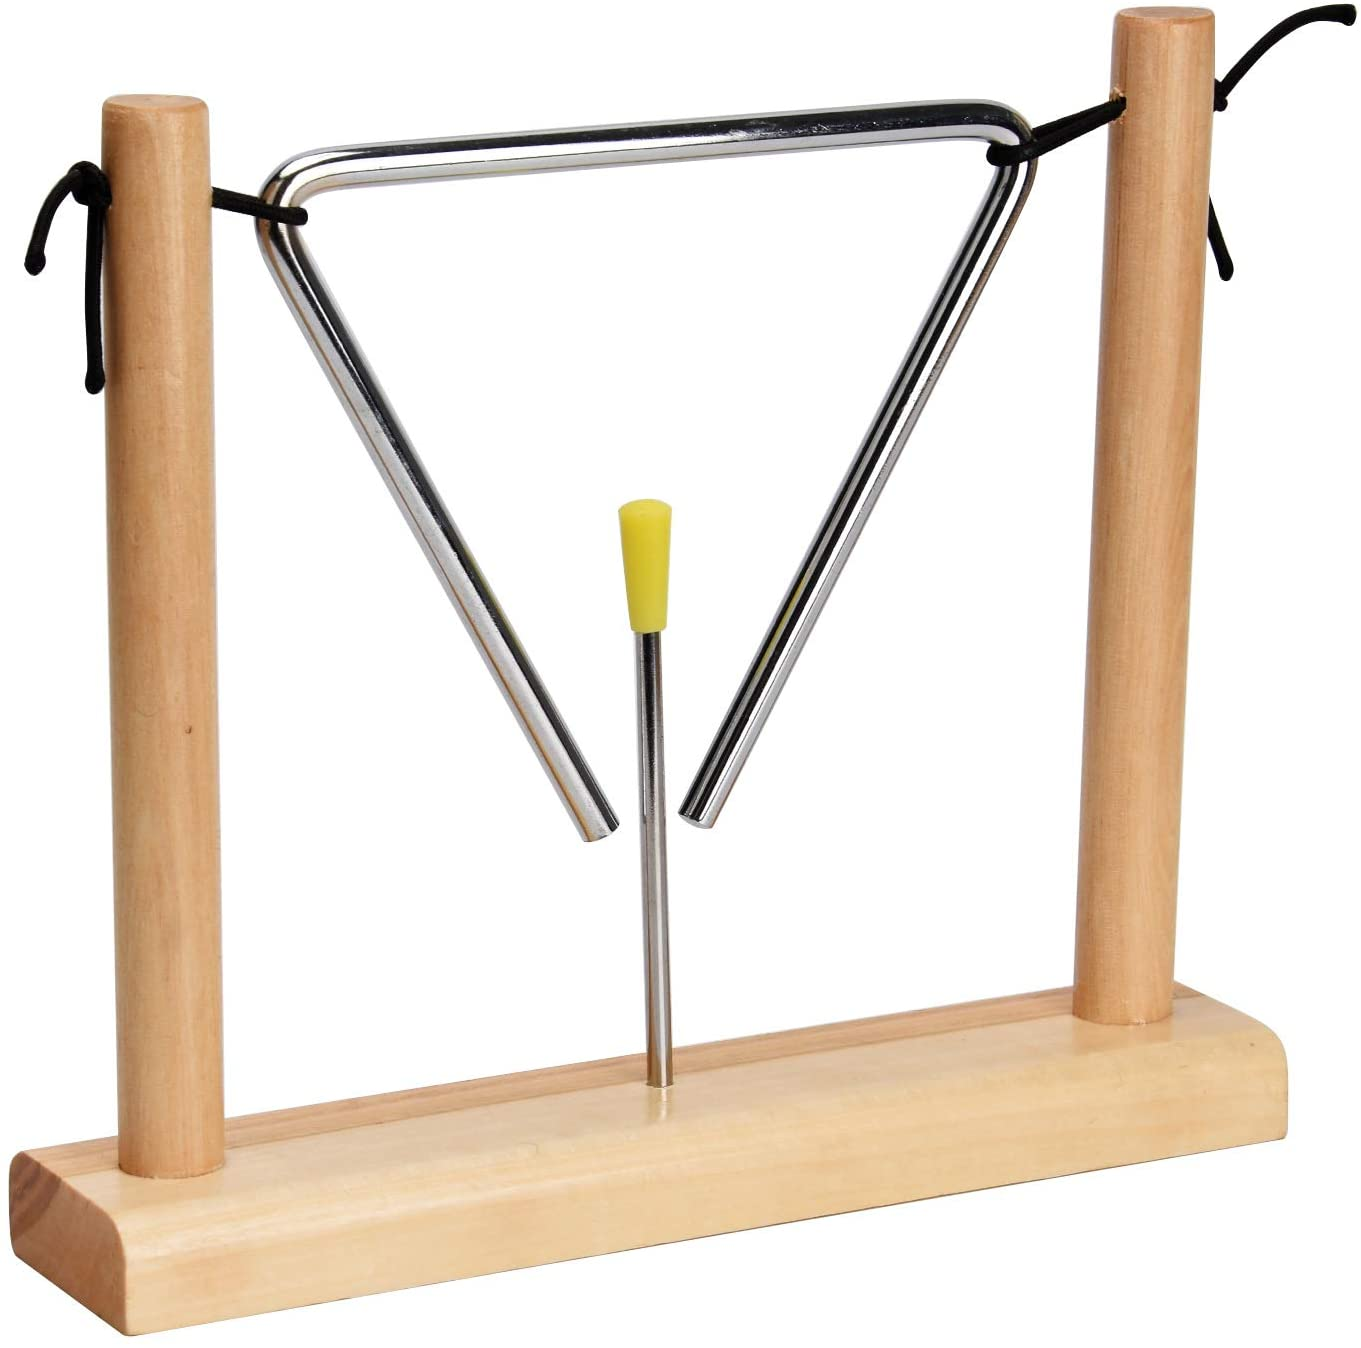 Facmogu 6 Inch Triangle Percussion Instrument with Striker & Wooden Stand, Musical Instrument for Children Music Enlightenment